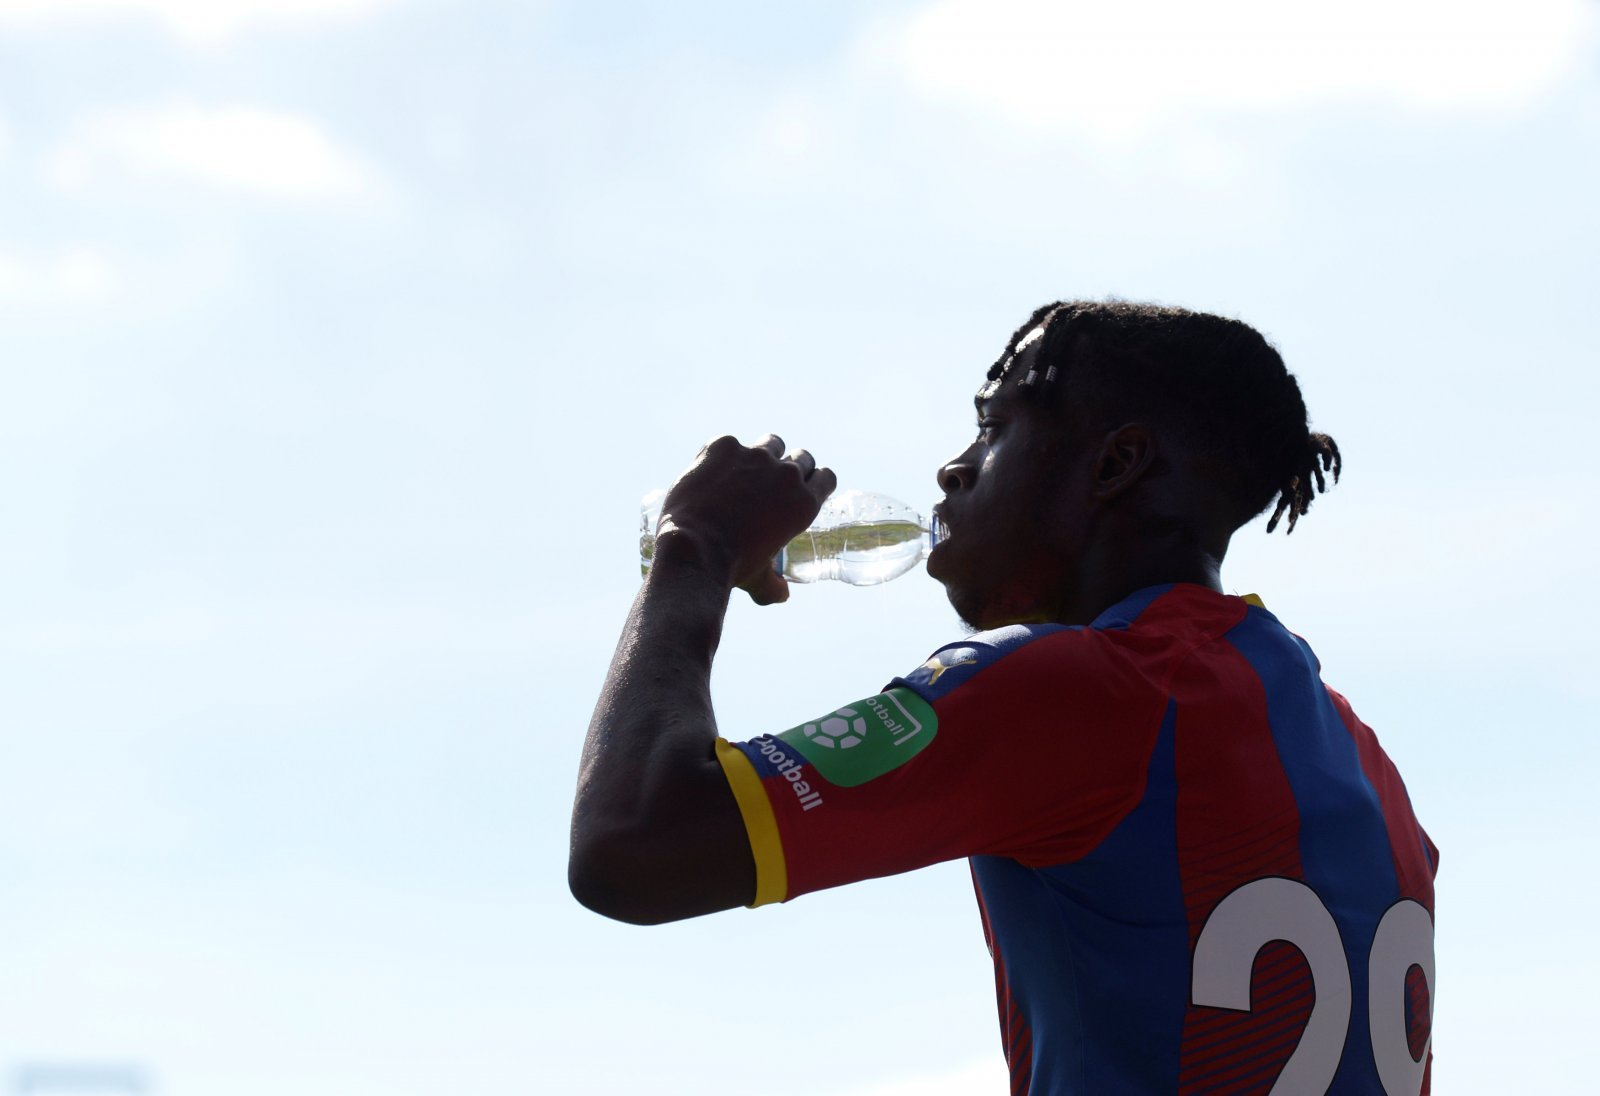 Crystal Palace: Aaron Wan-Bissaka isn't ready for England just yet